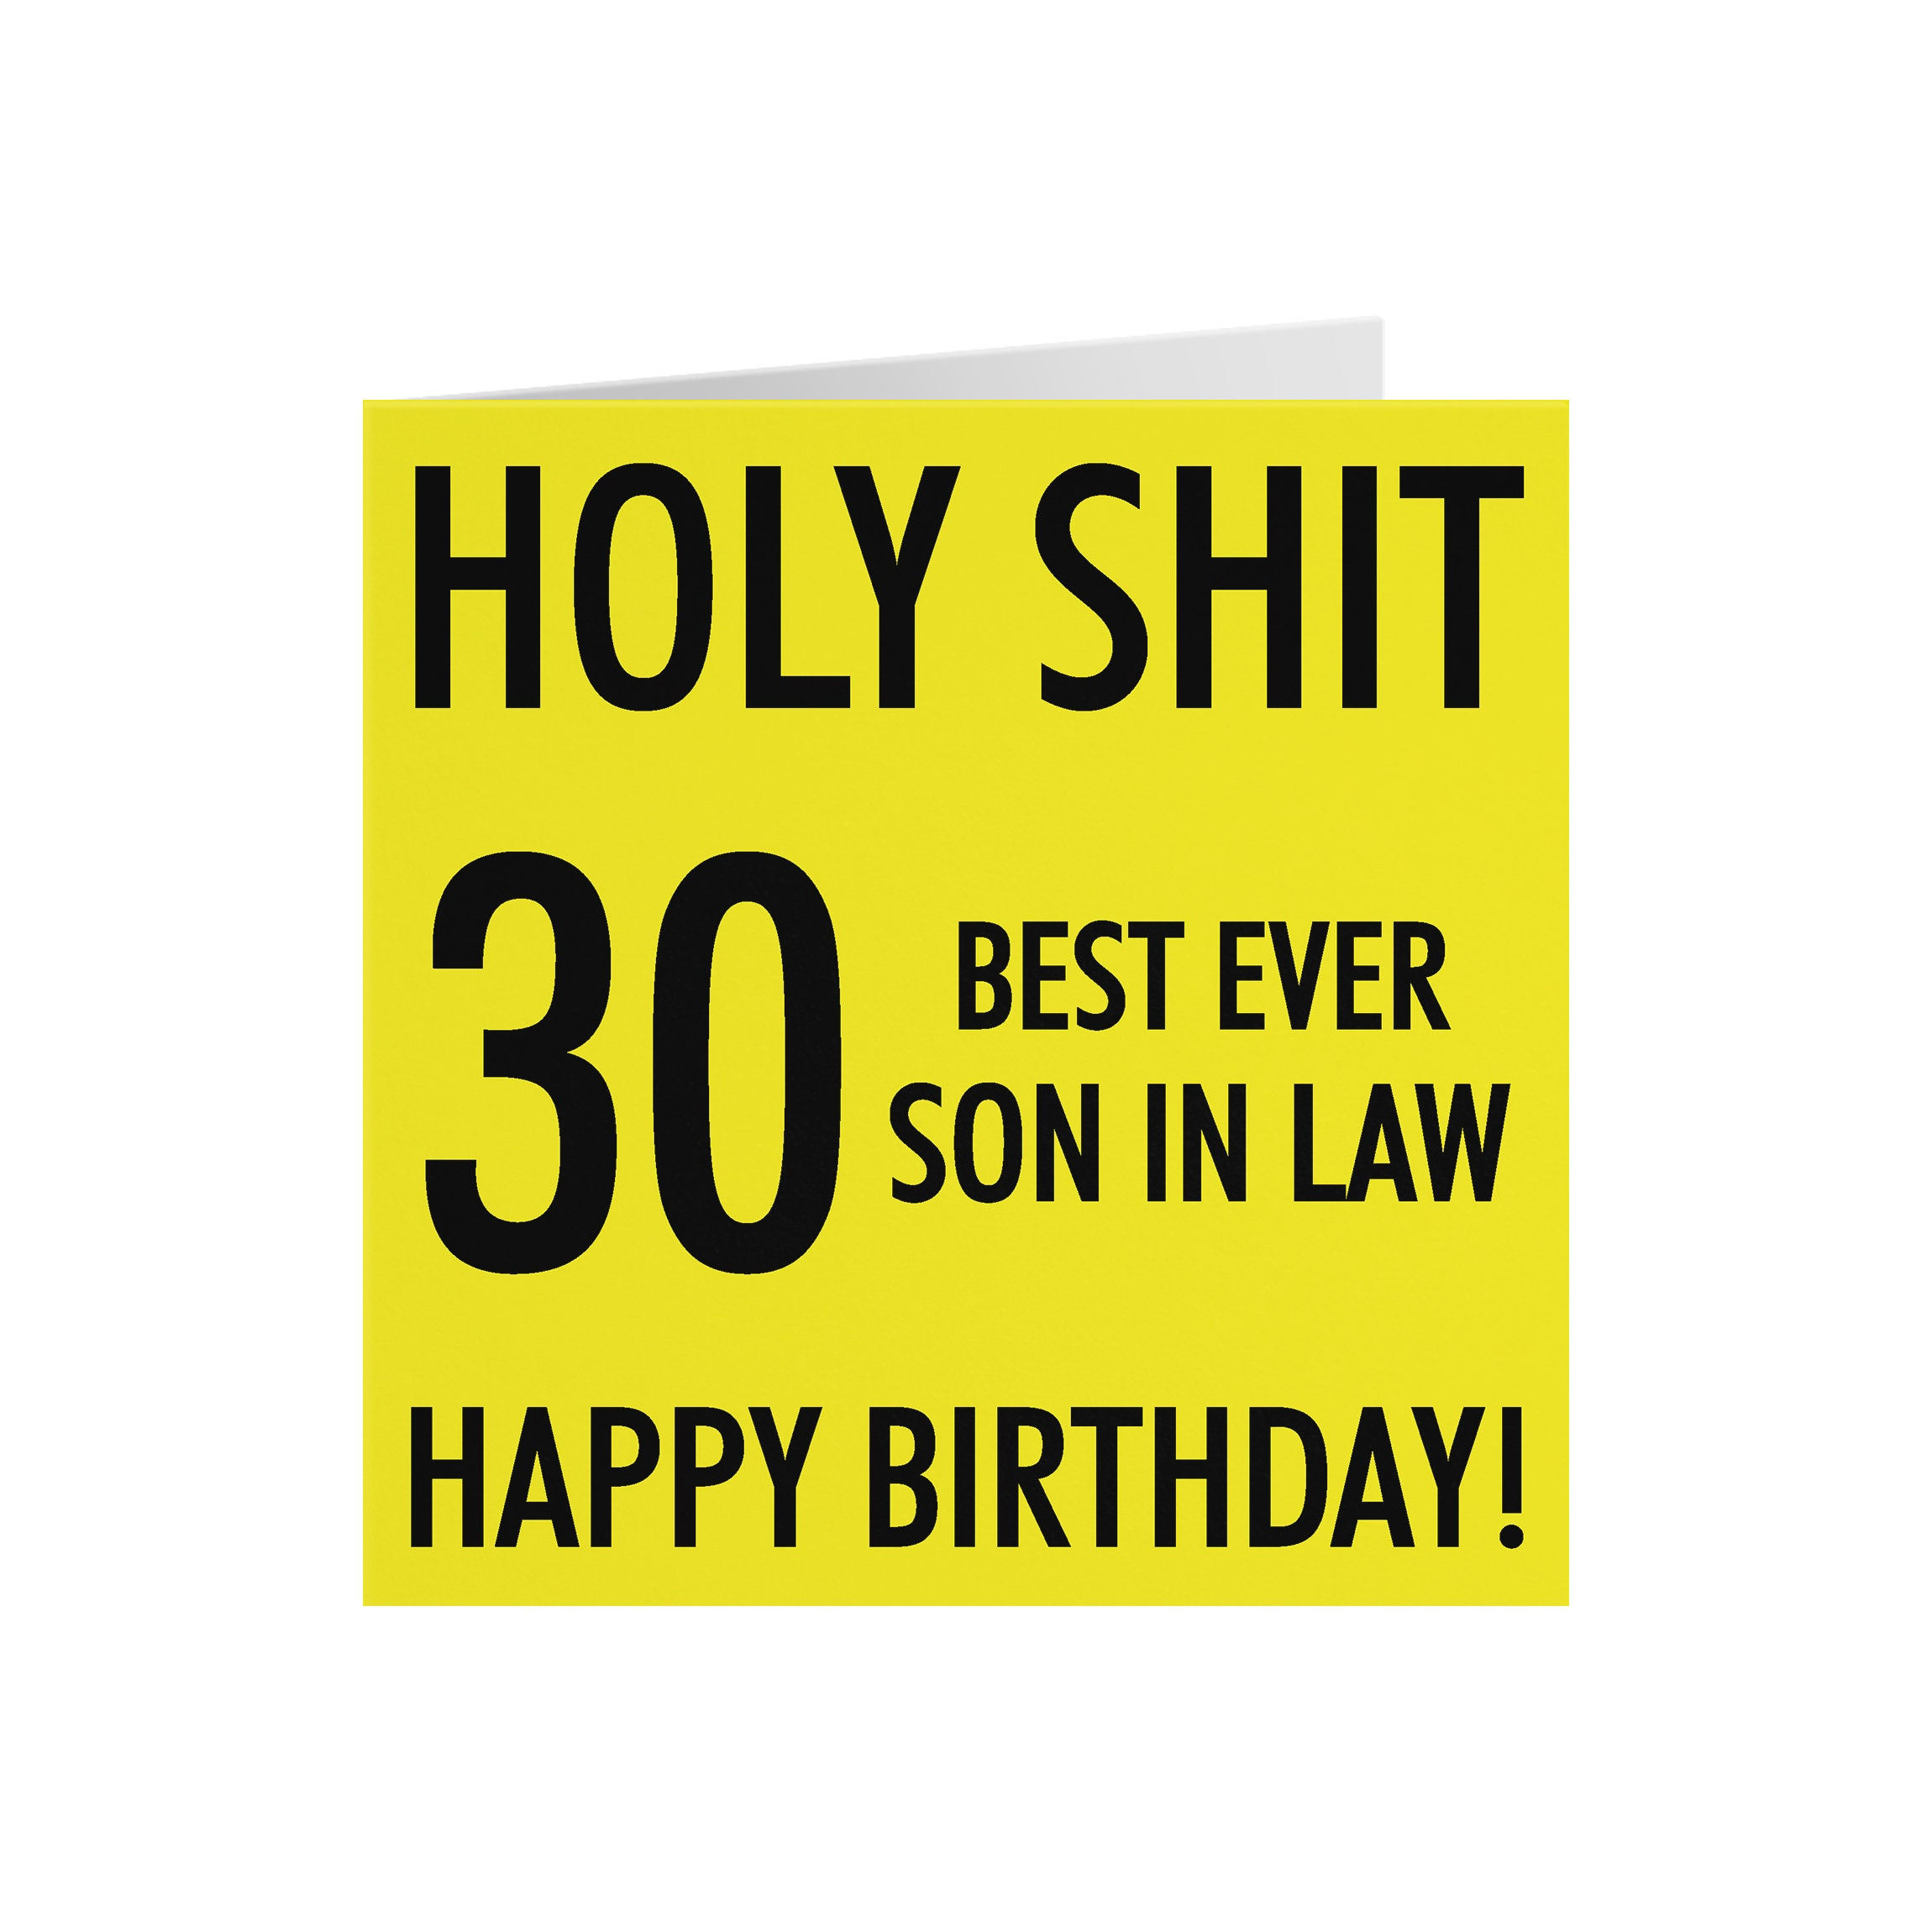 30 Son In Law 30th Birthday Card   Holy Shit   30 Best Ever Son In Law   Happy  Birthday   Holy Shit Collection